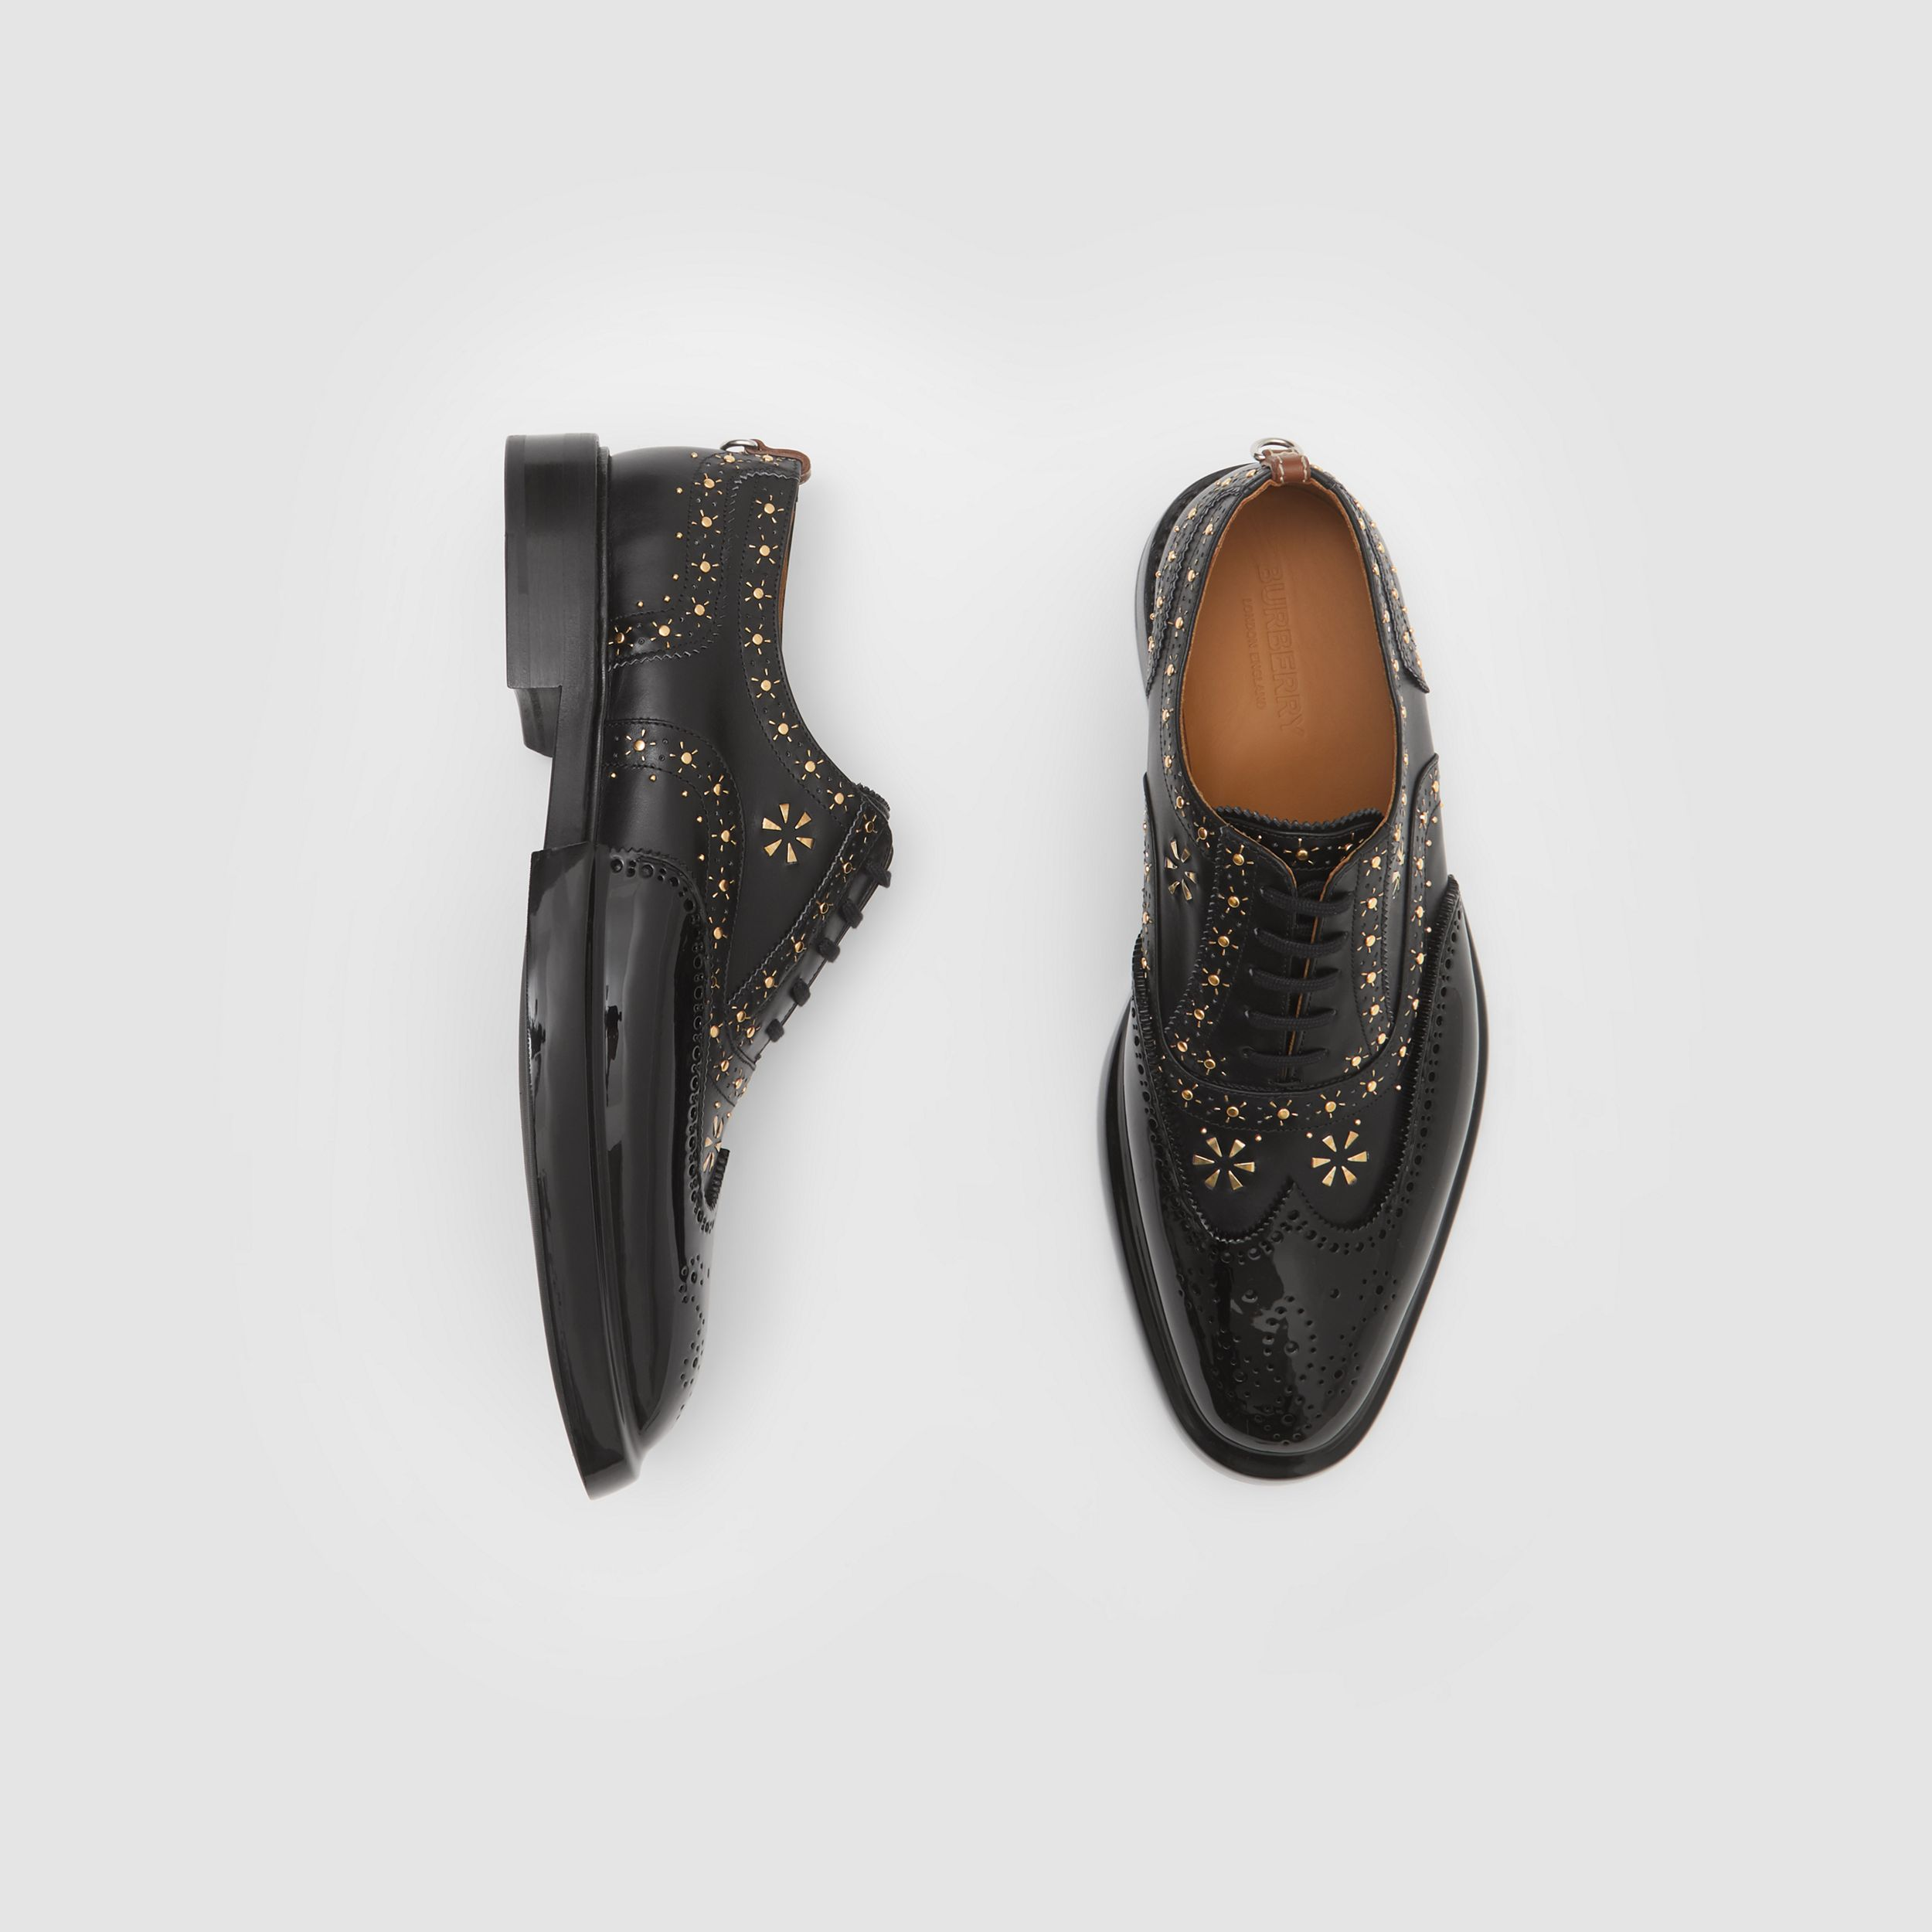 Toe Cap Detail Studded Leather Oxford Brogues in Black | Burberry Canada - 1